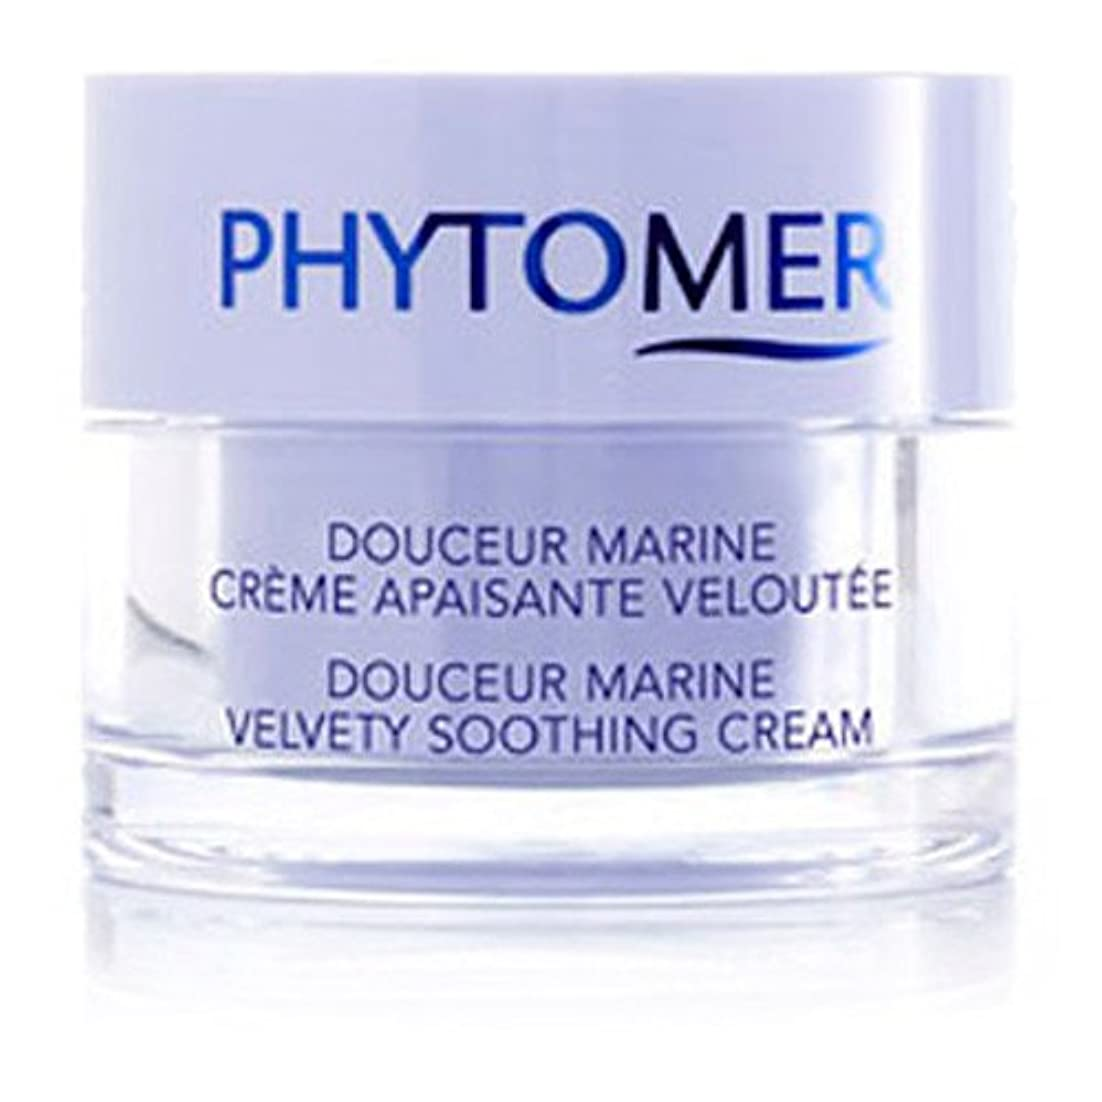 予算法廷余剰Phytomer Douceur Marine Velvety Soothing Cream 50ml/1.7oz並行輸入品